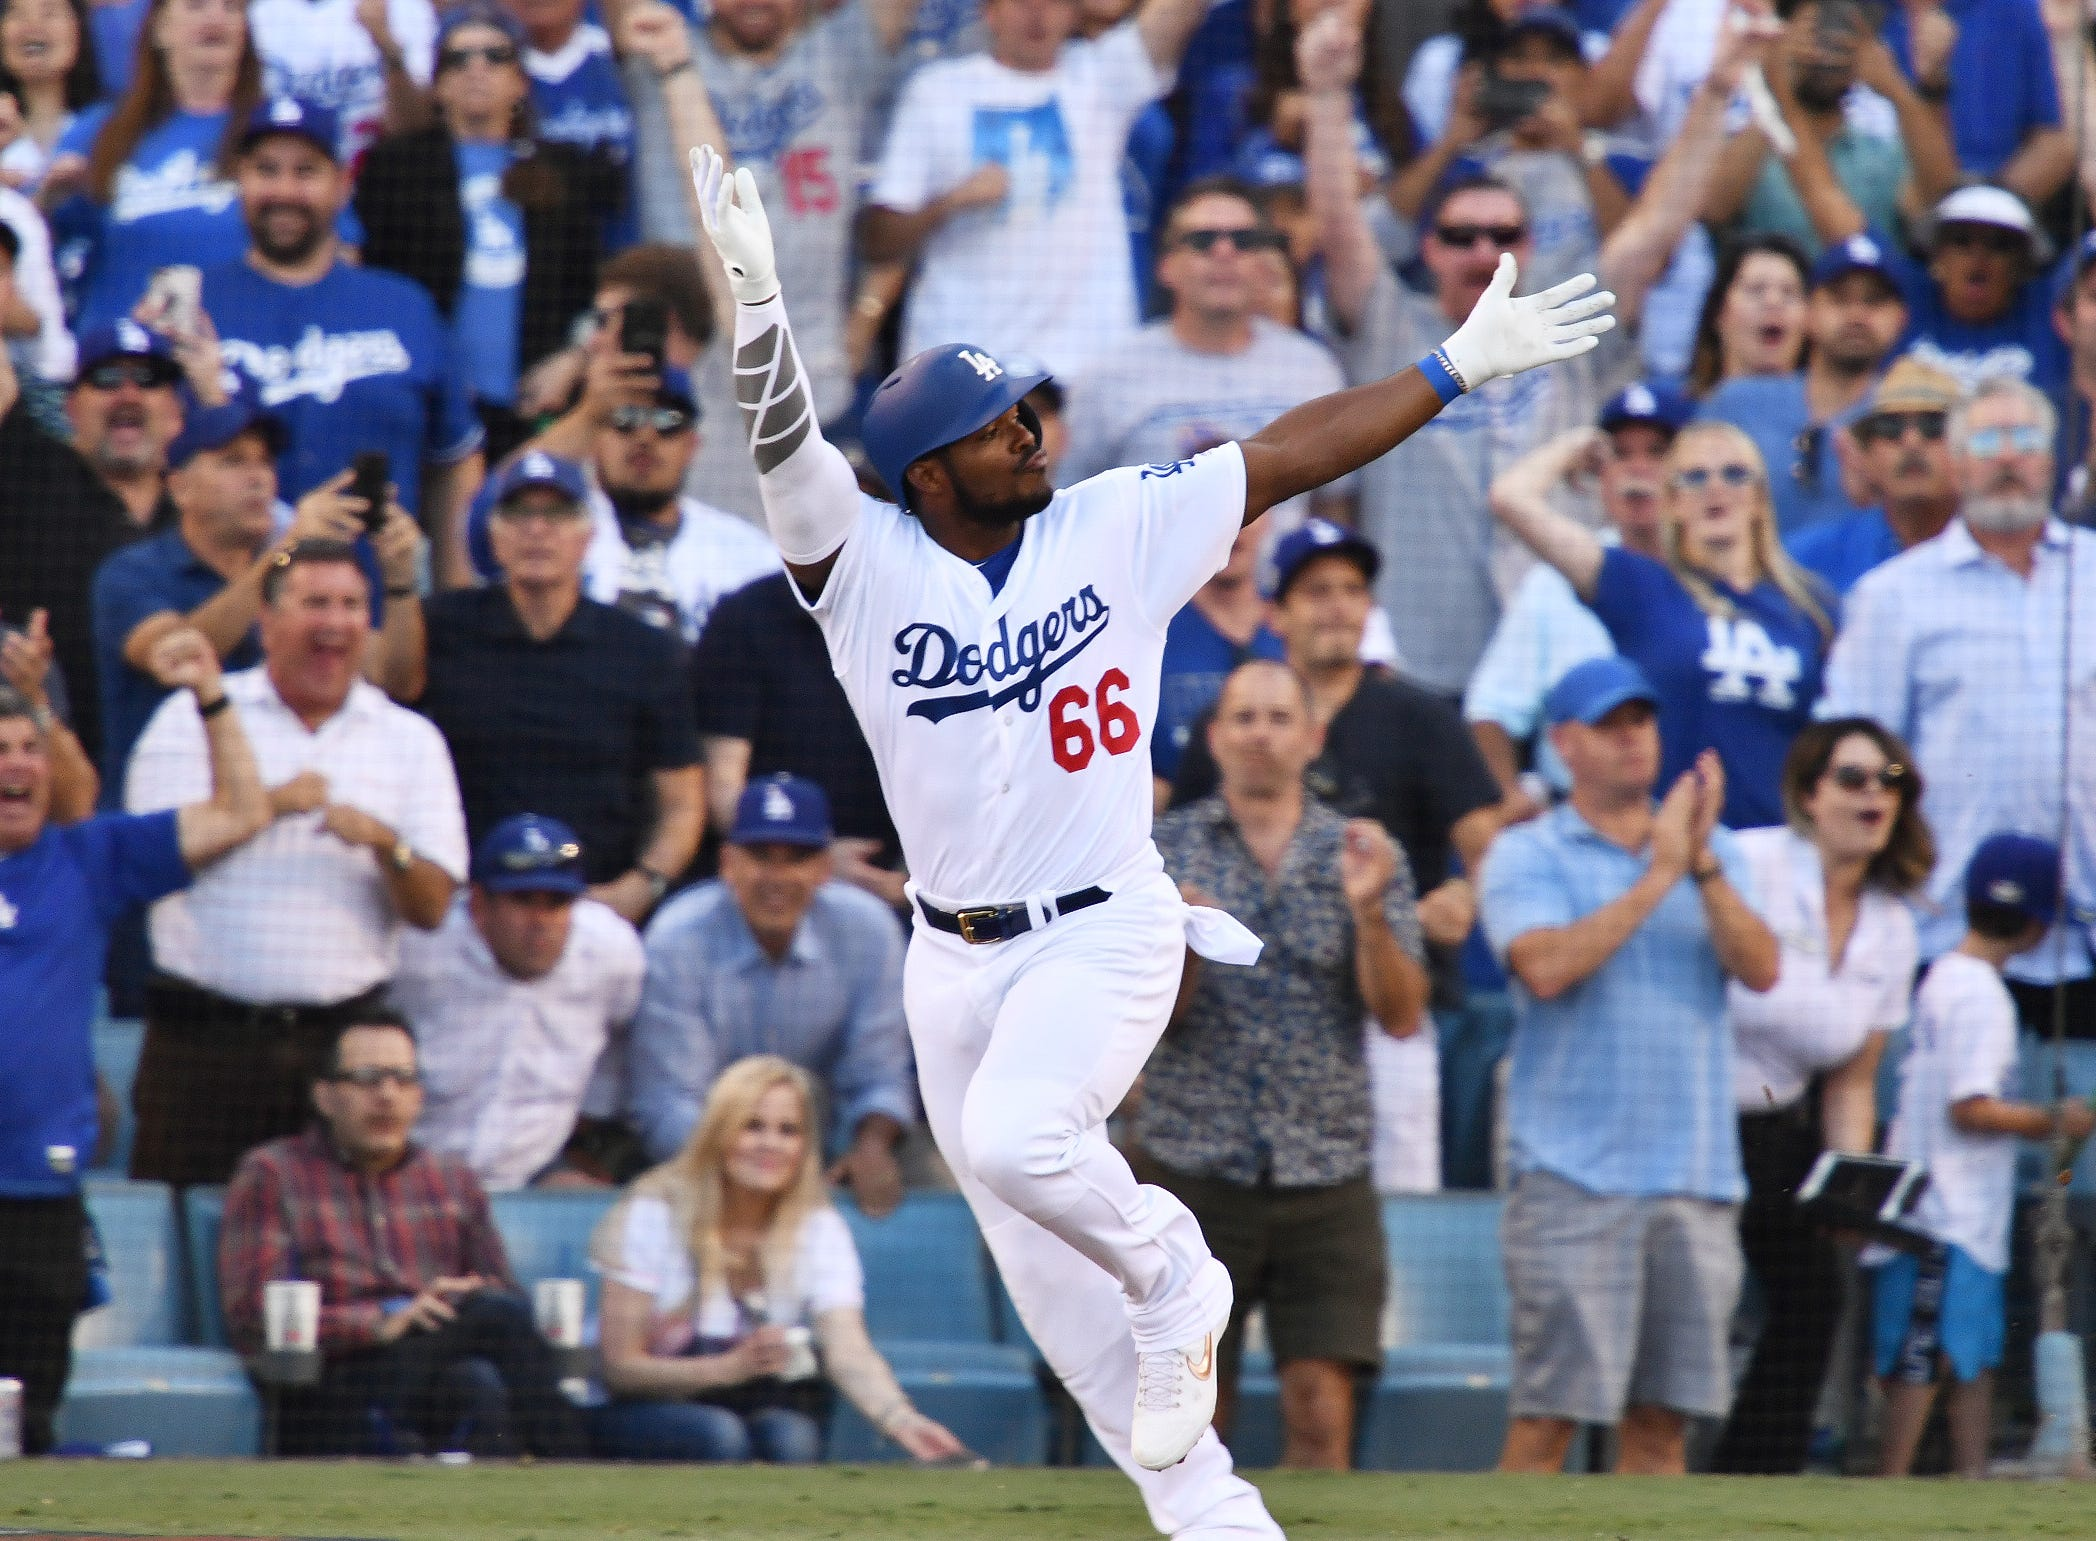 NLCS Game 5: Yasiel Puig celebrates his RBI single in the sixth inning.